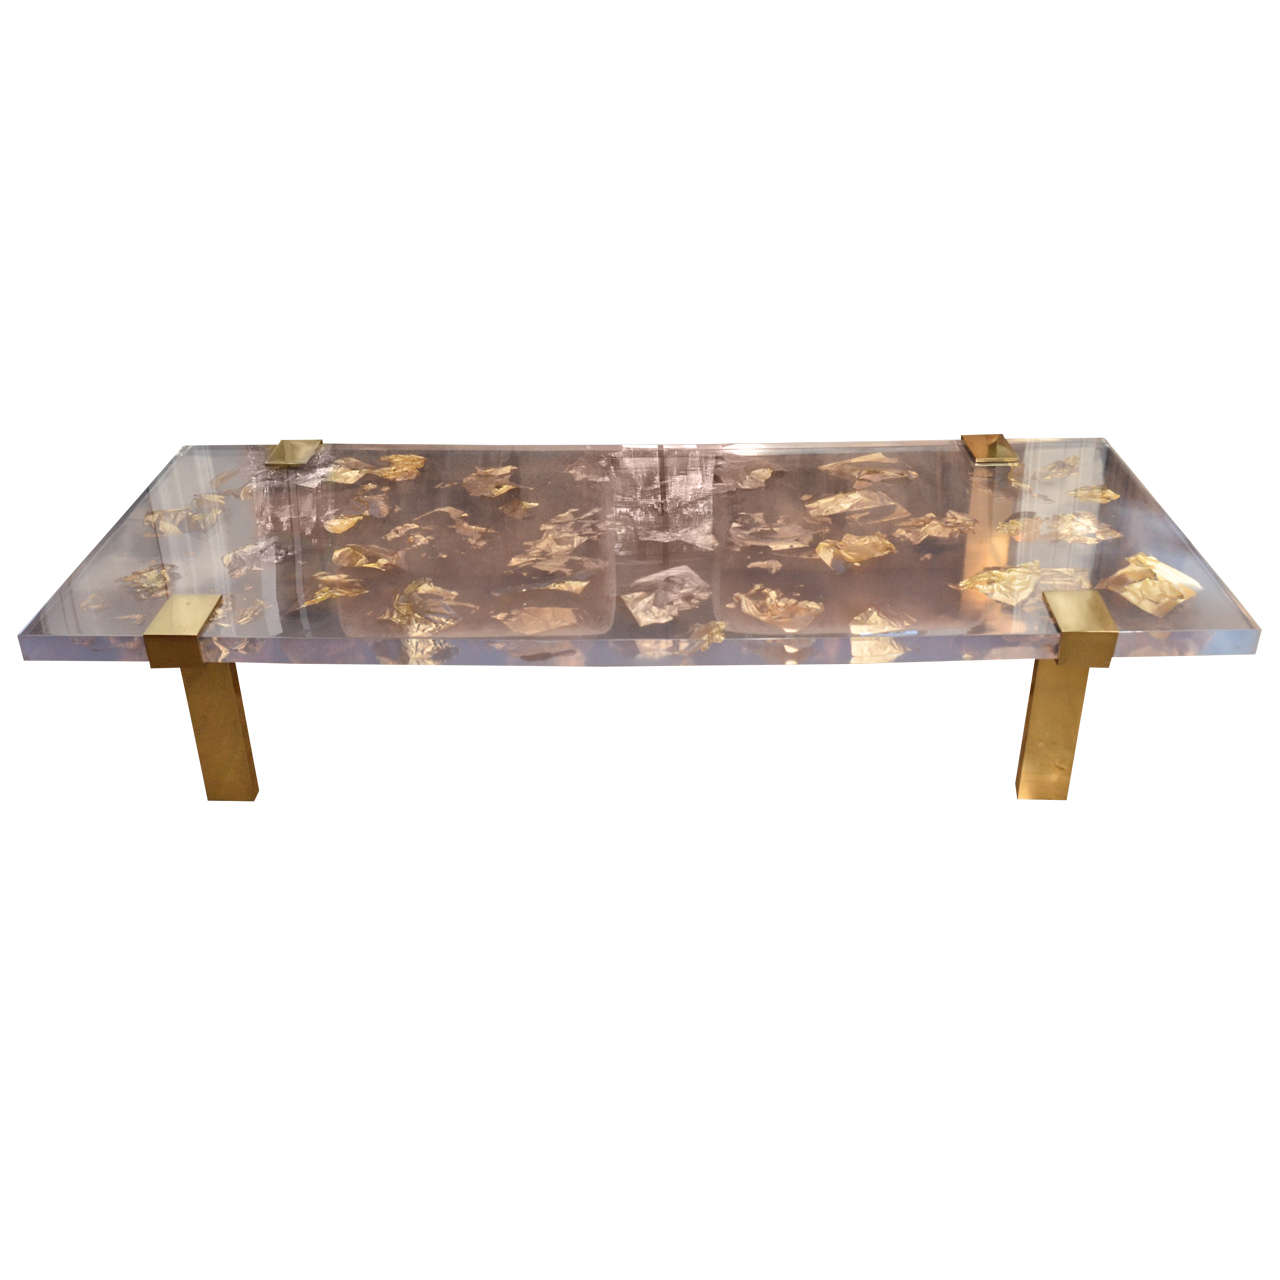 Merveilleux Contemporary Gold Leaf Inlay Coffee Table With Brass Frame For Sale